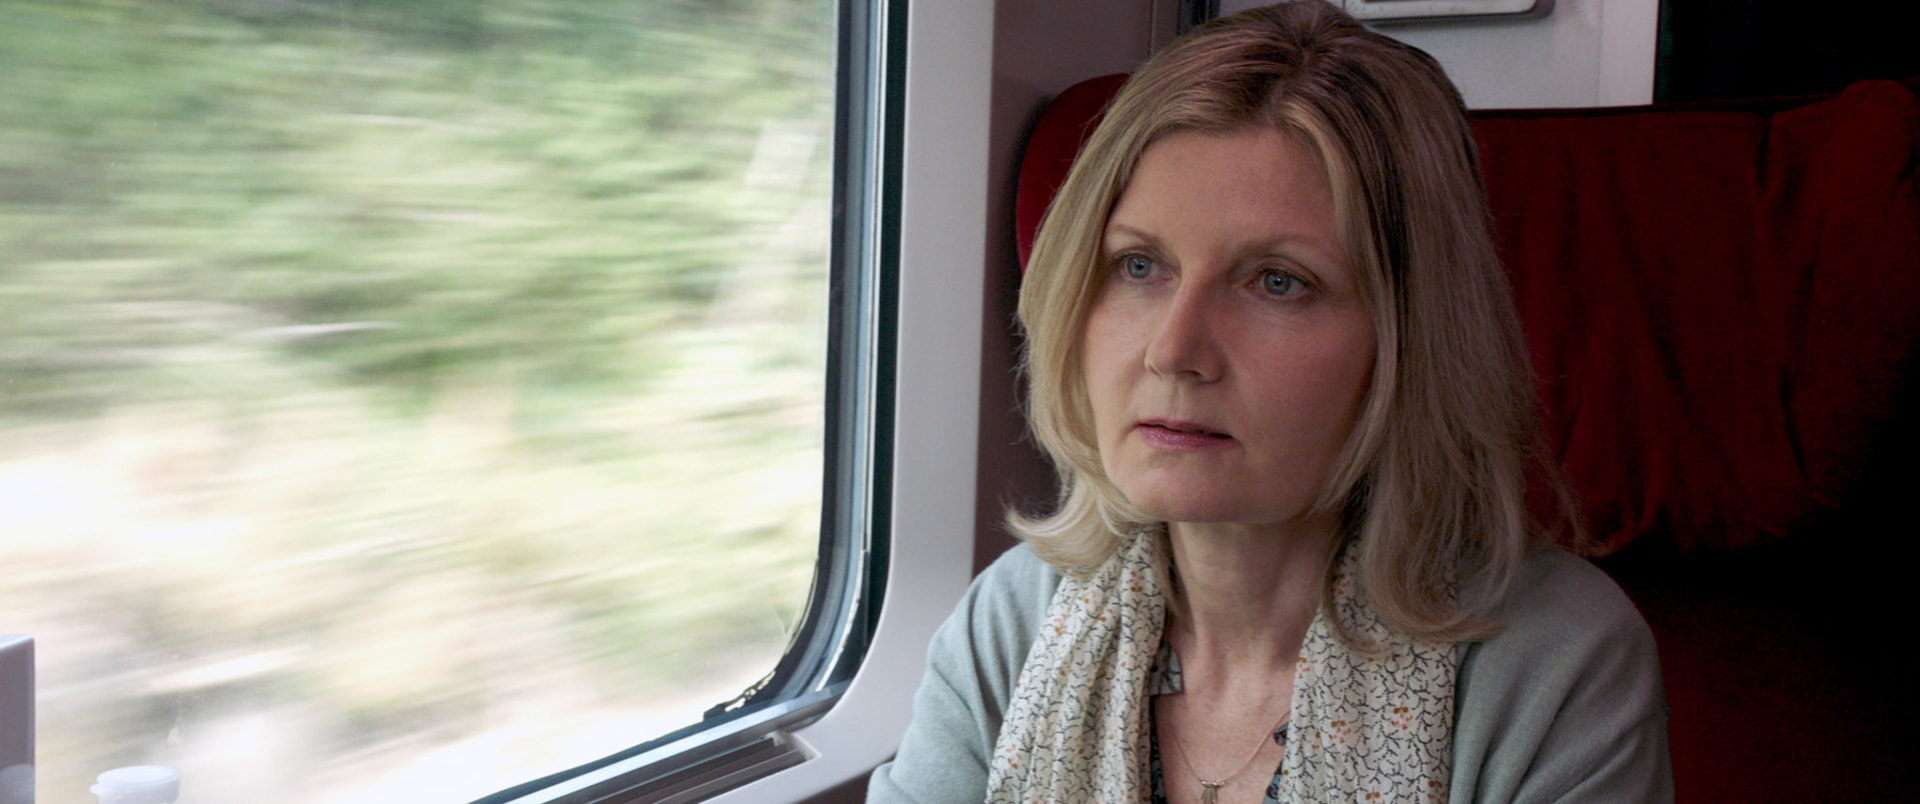 """ISABELLE RISACHER MOOGALIAN as Isabelle in Warner Bros. Pictures' and Village Roadshow Pictures' """"THE 15:17 TO PARIS,"""" a Warner Bros. Pictures release."""